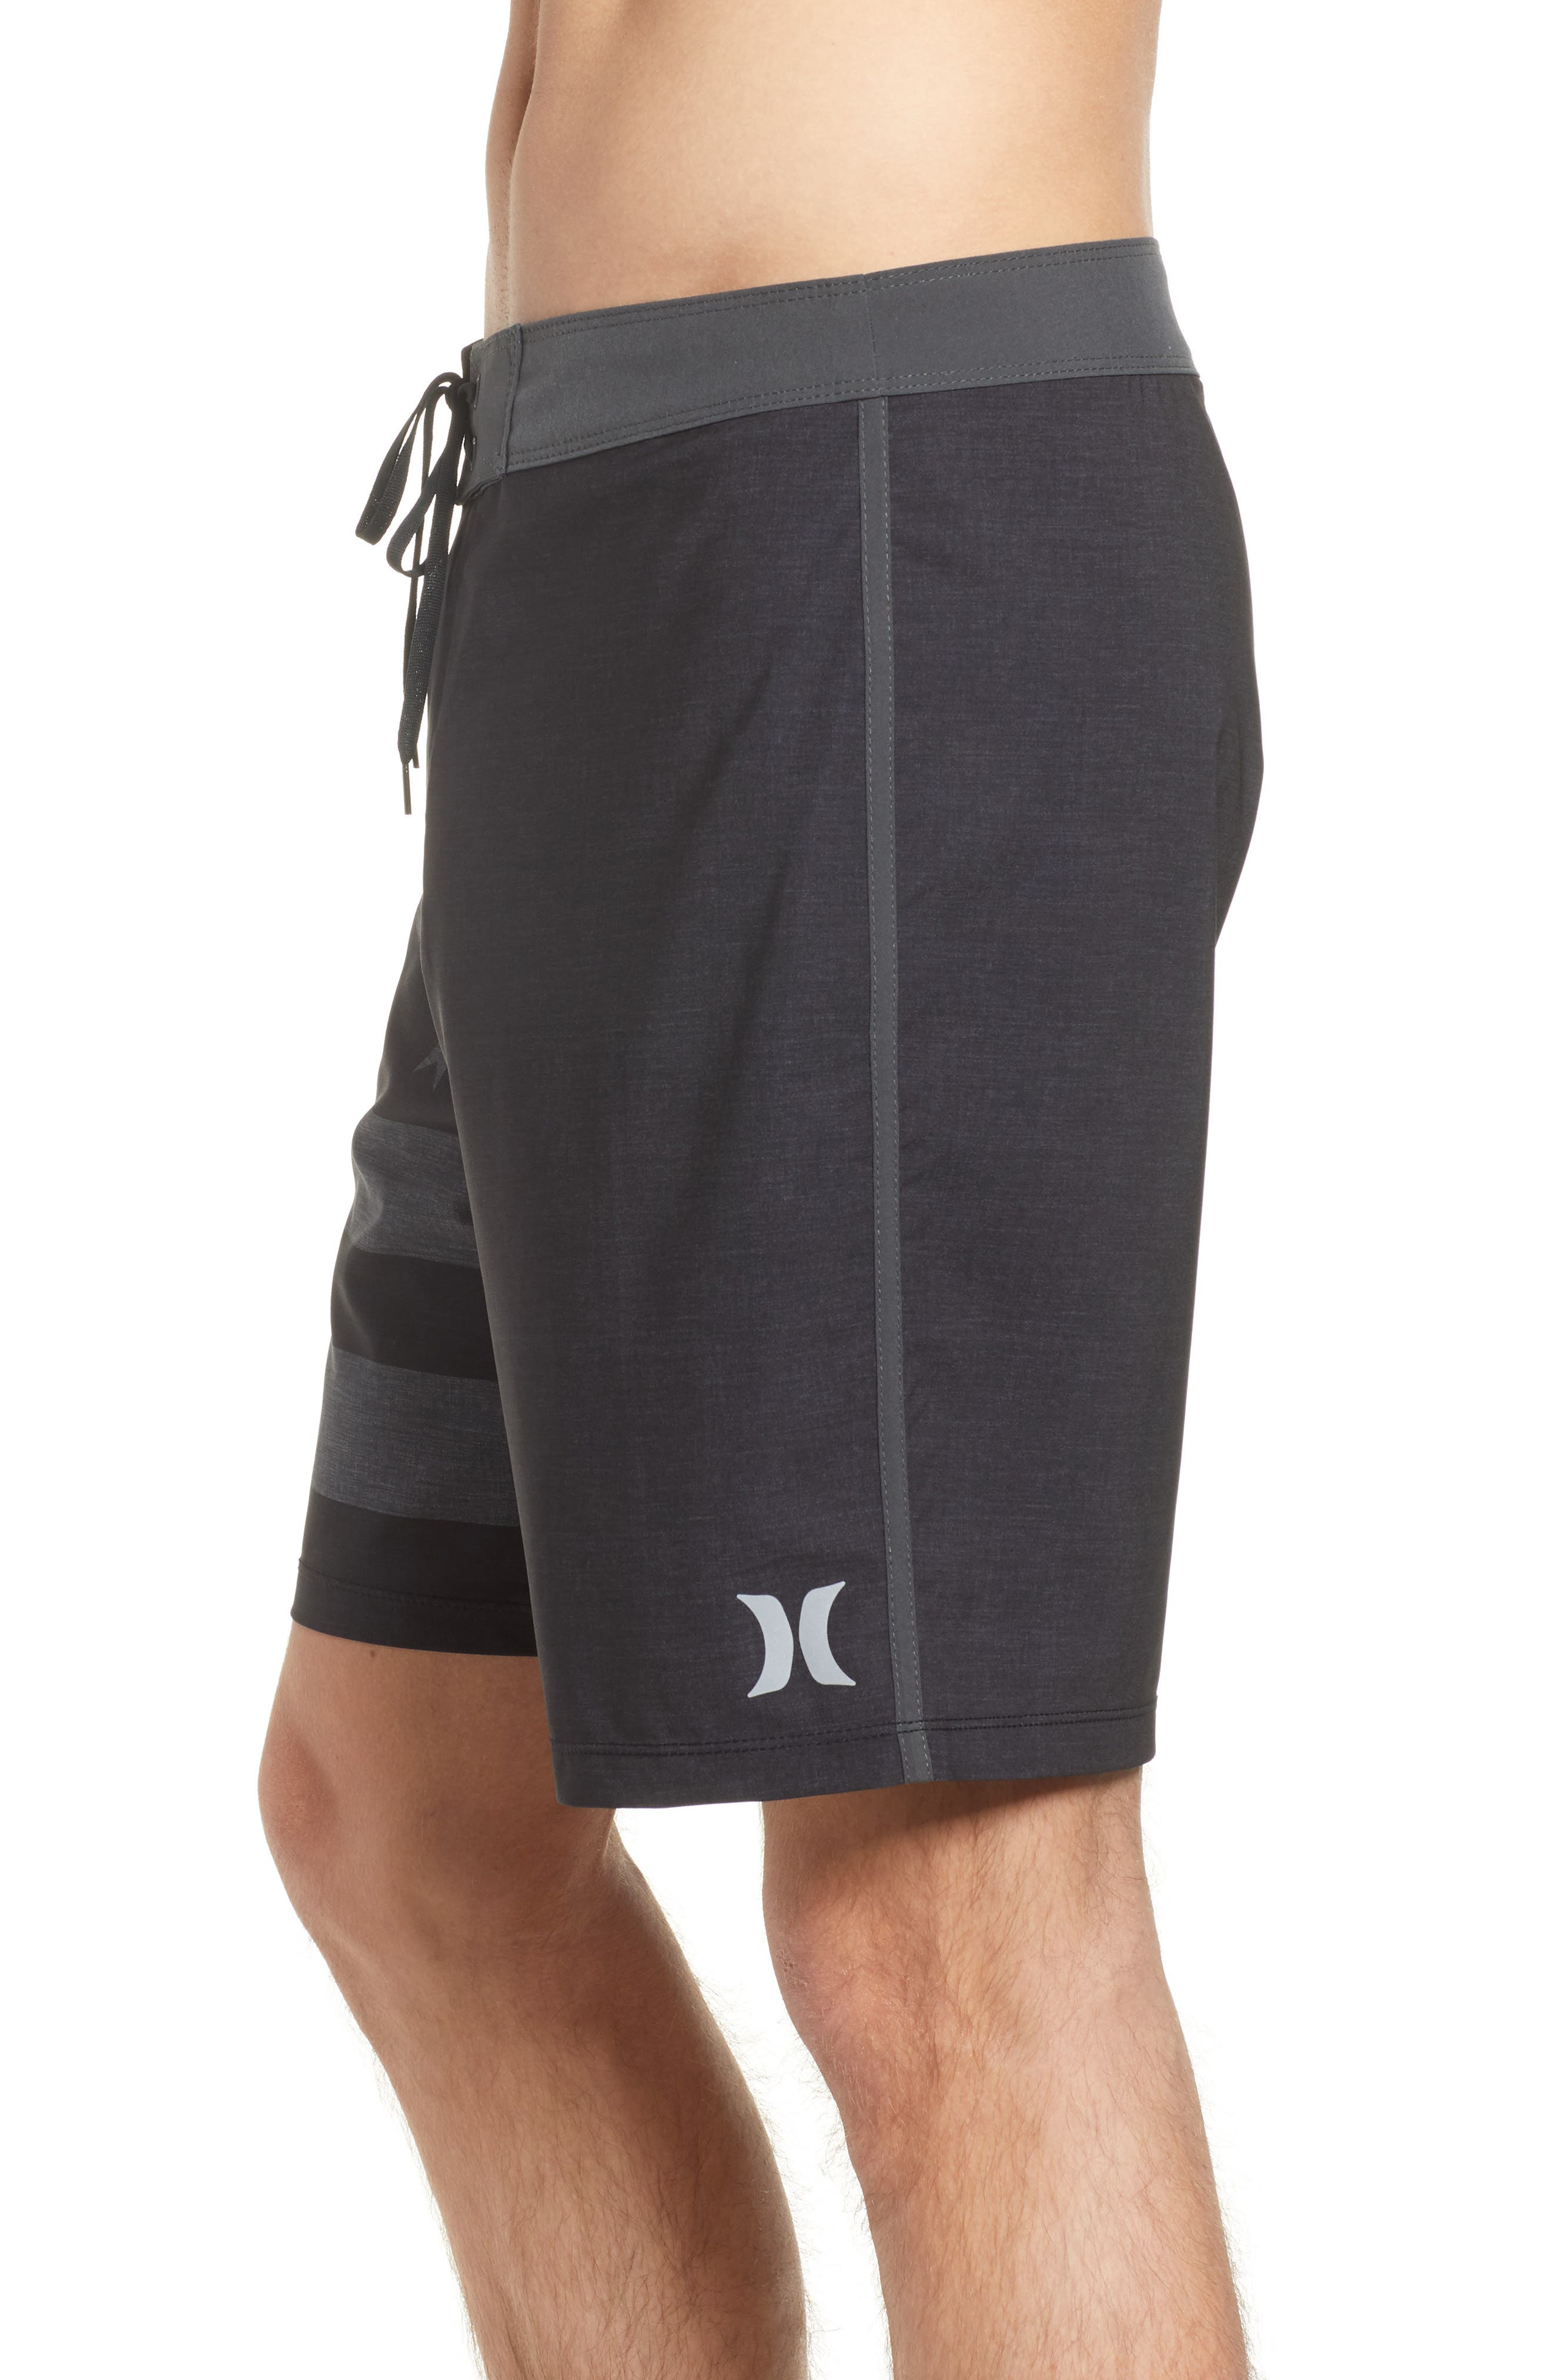 Phantom Cheers Board Shorts,                             Alternate thumbnail 4, color,                             Black